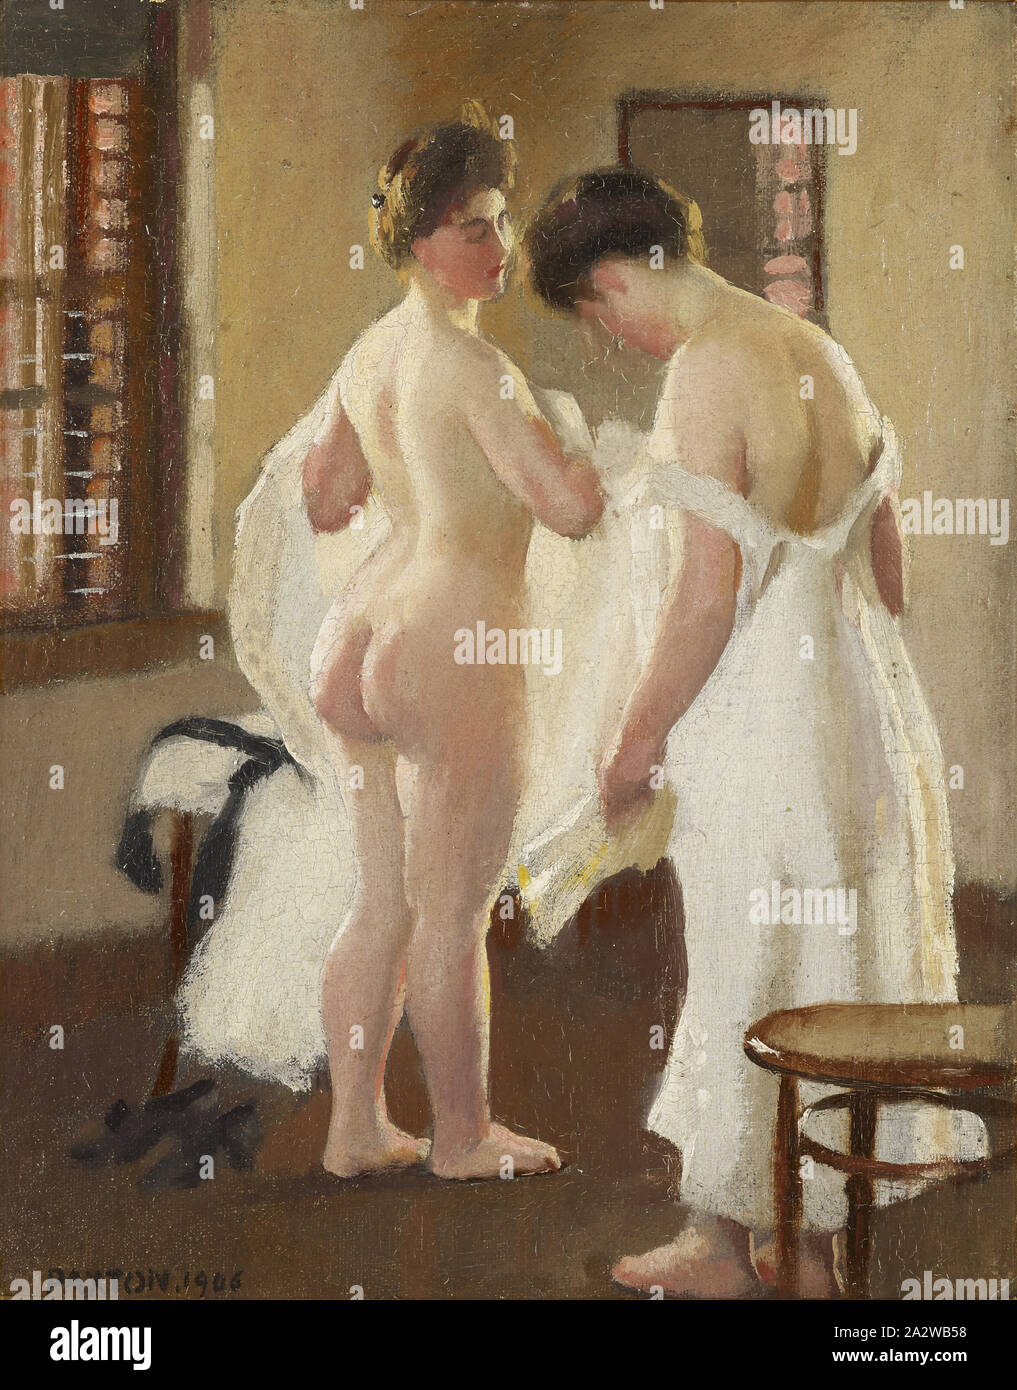 Women Dressing, William McGregor Paxton (American, 1869-1941), 1906, oil on canvas, 10-1/2 x 8-3/8 in. (canvas) 14 x 12 x 1-5/8 in. (framed), Signed and dated, l.l.: PAXTON, 1906, American Painting and Sculpture to 1945 Stock Photo